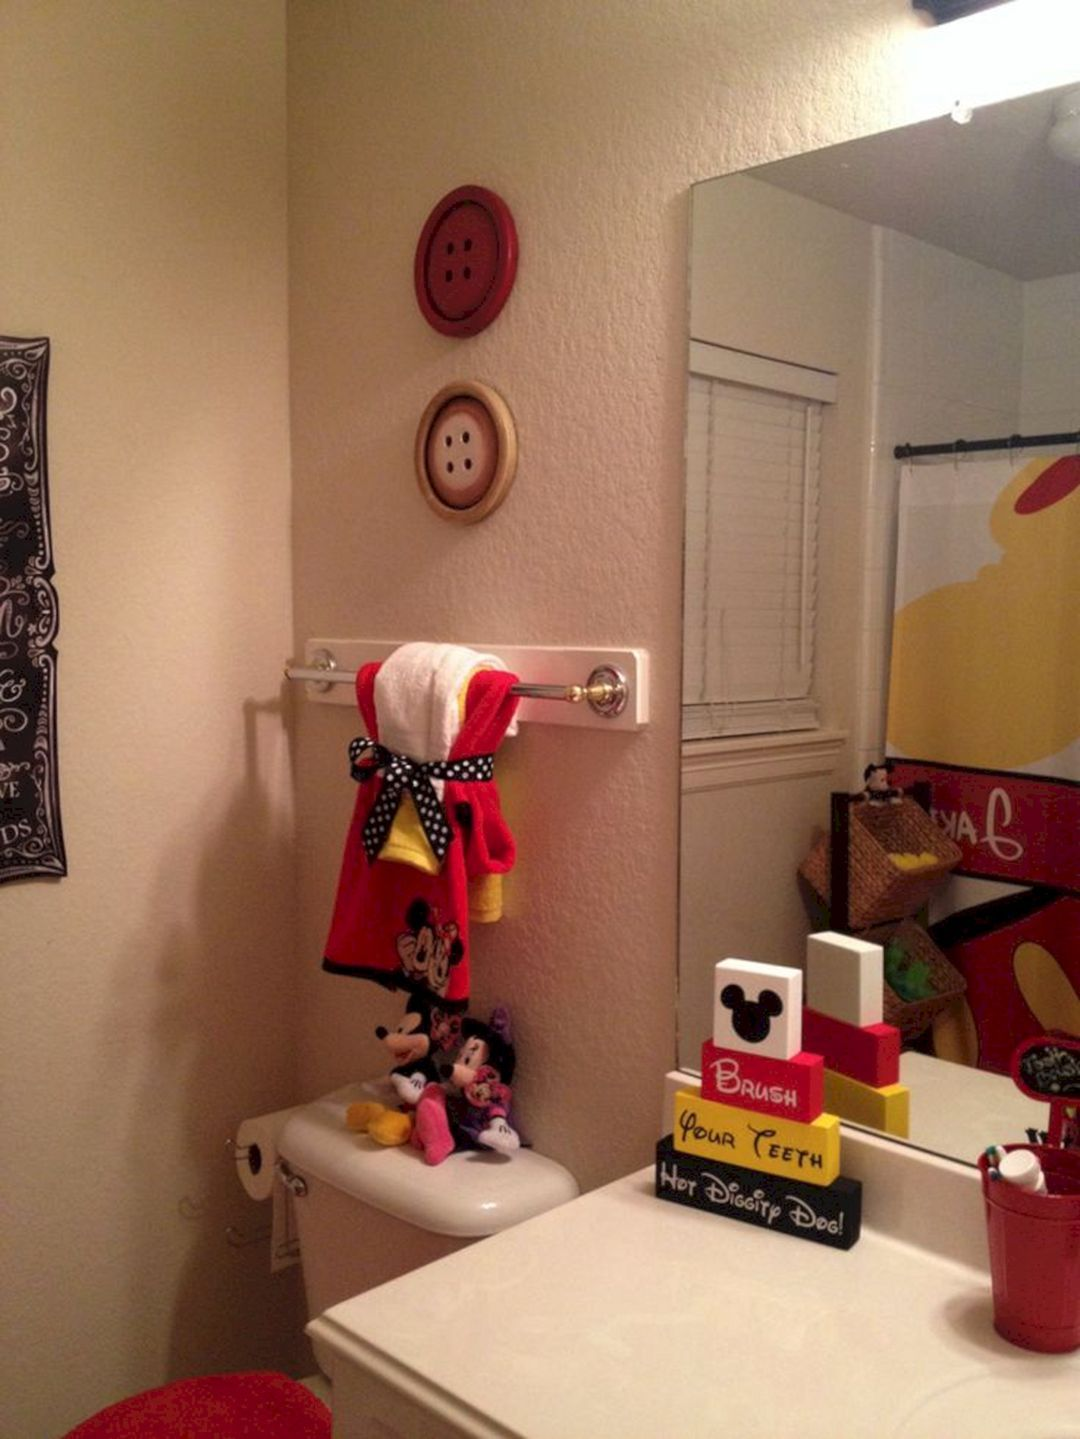 35 Best Mickey Mouse Bathroom Collection Ideas For Your Kids Bathroom Freshouz Com Mickey Mouse Bathroom Disney Bathroom Disney Home Decor